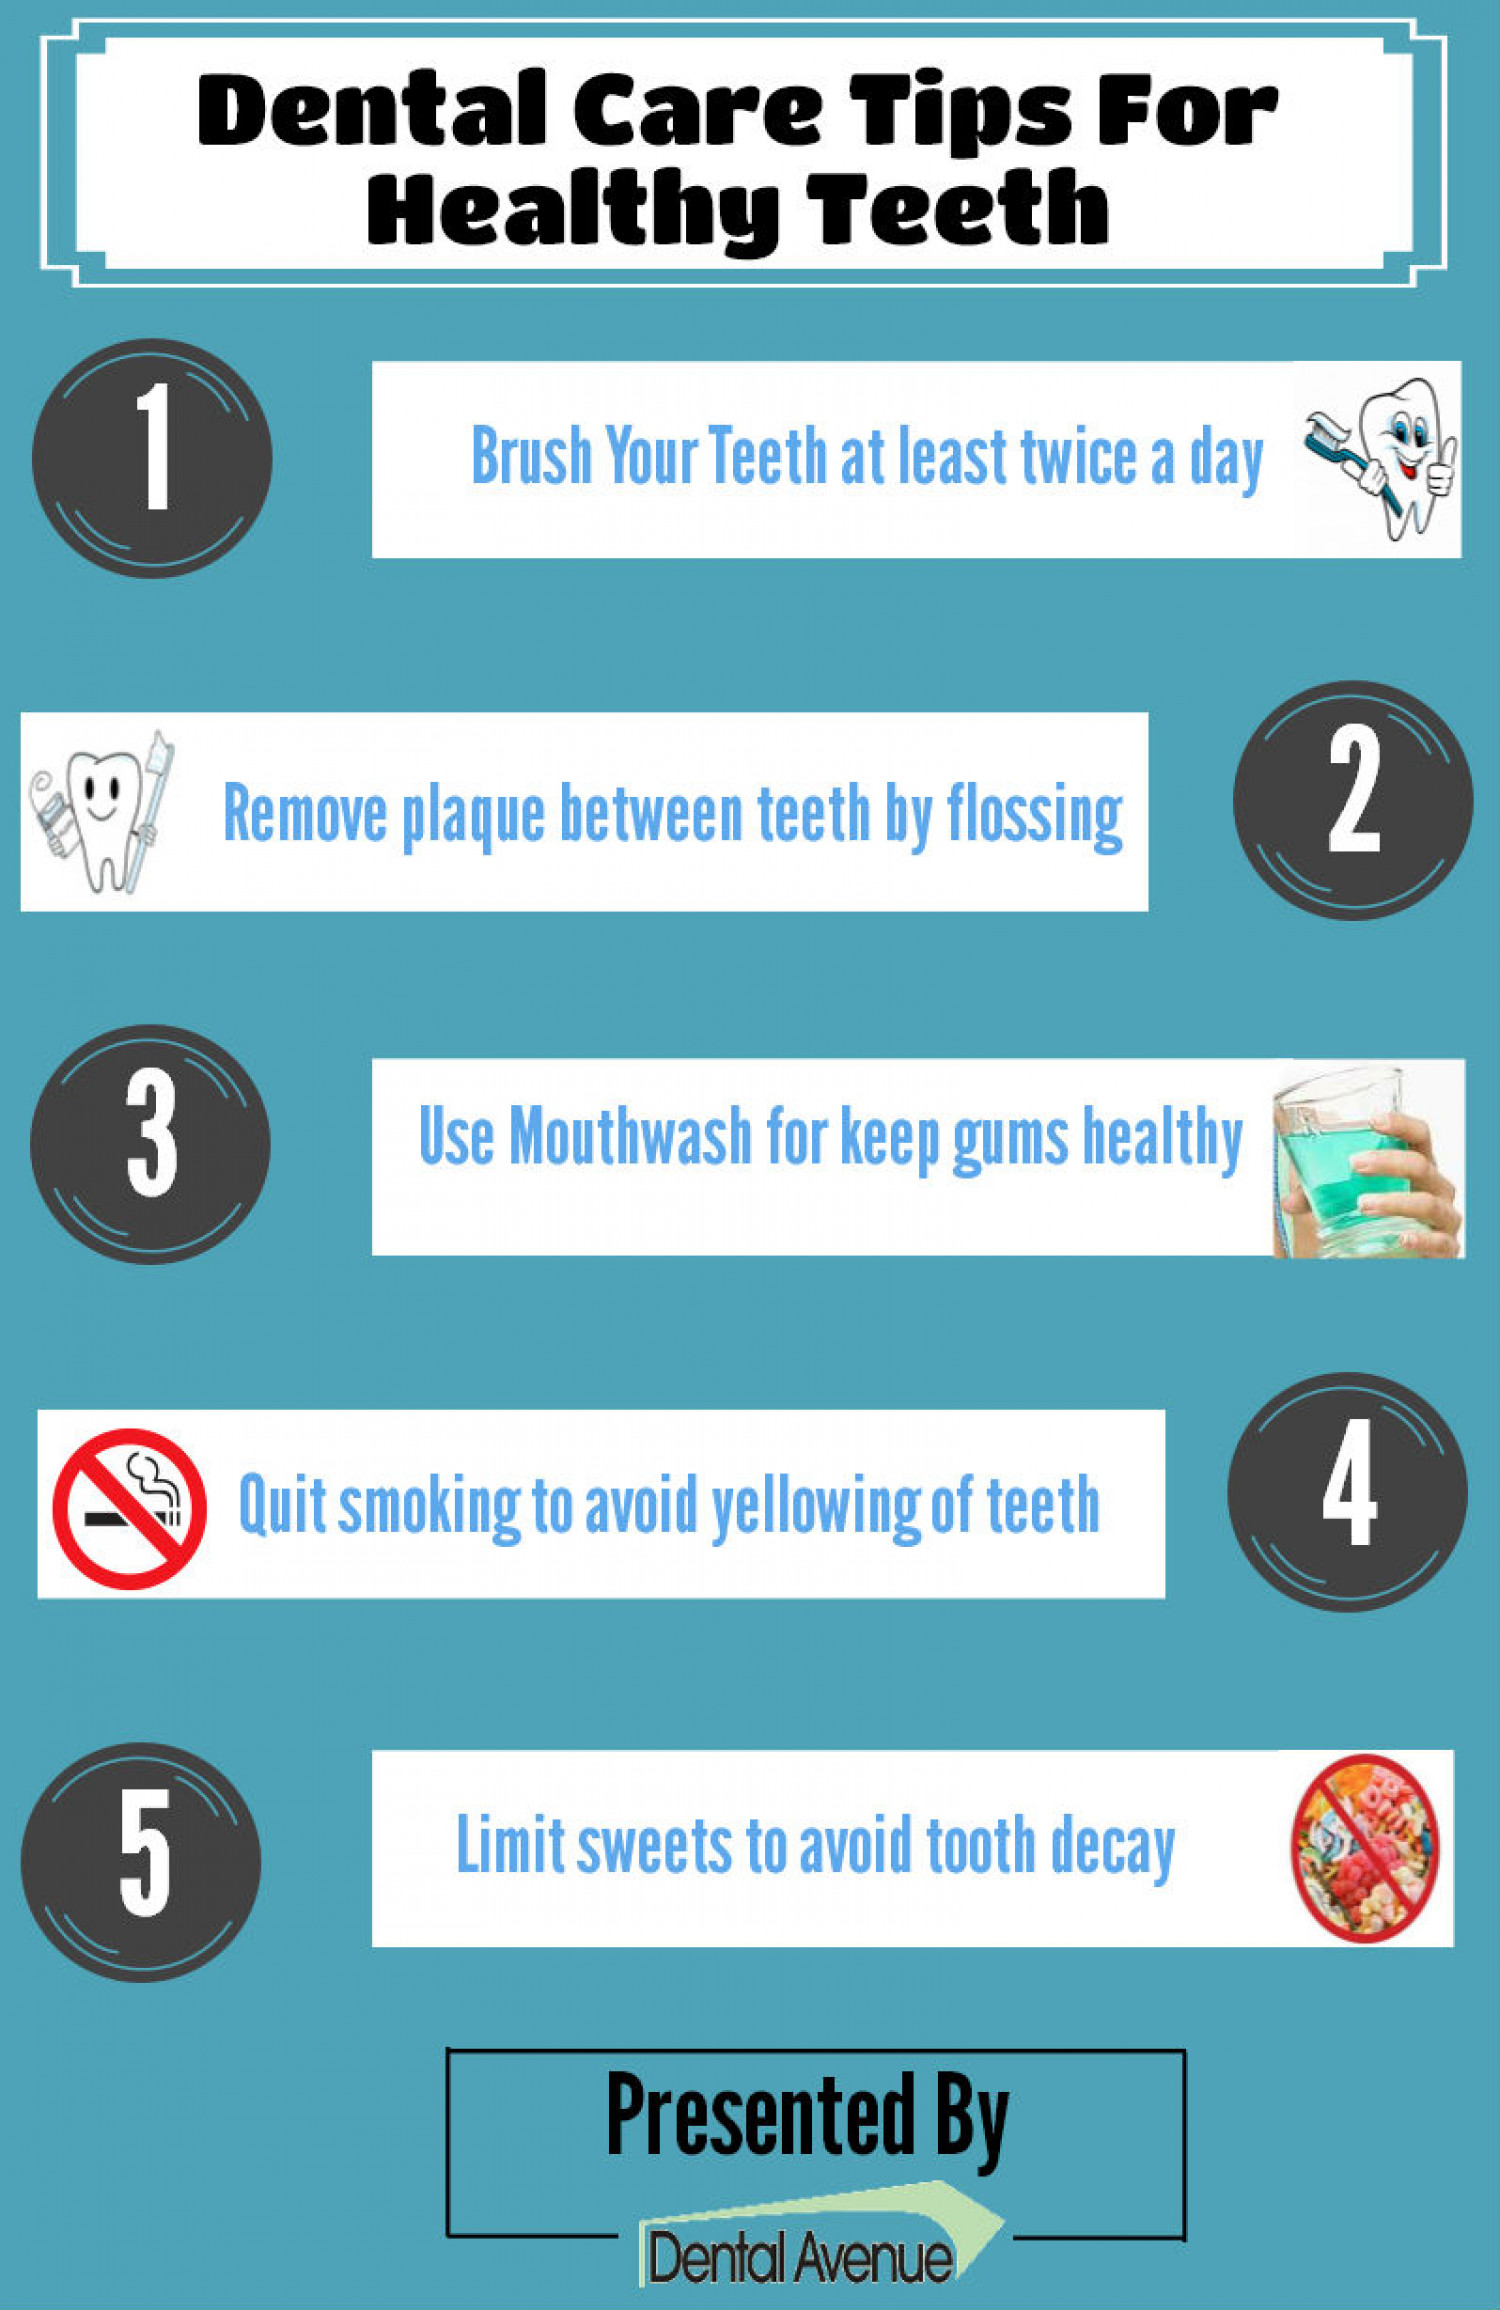 Dental Care Tips For Healthy Teeth